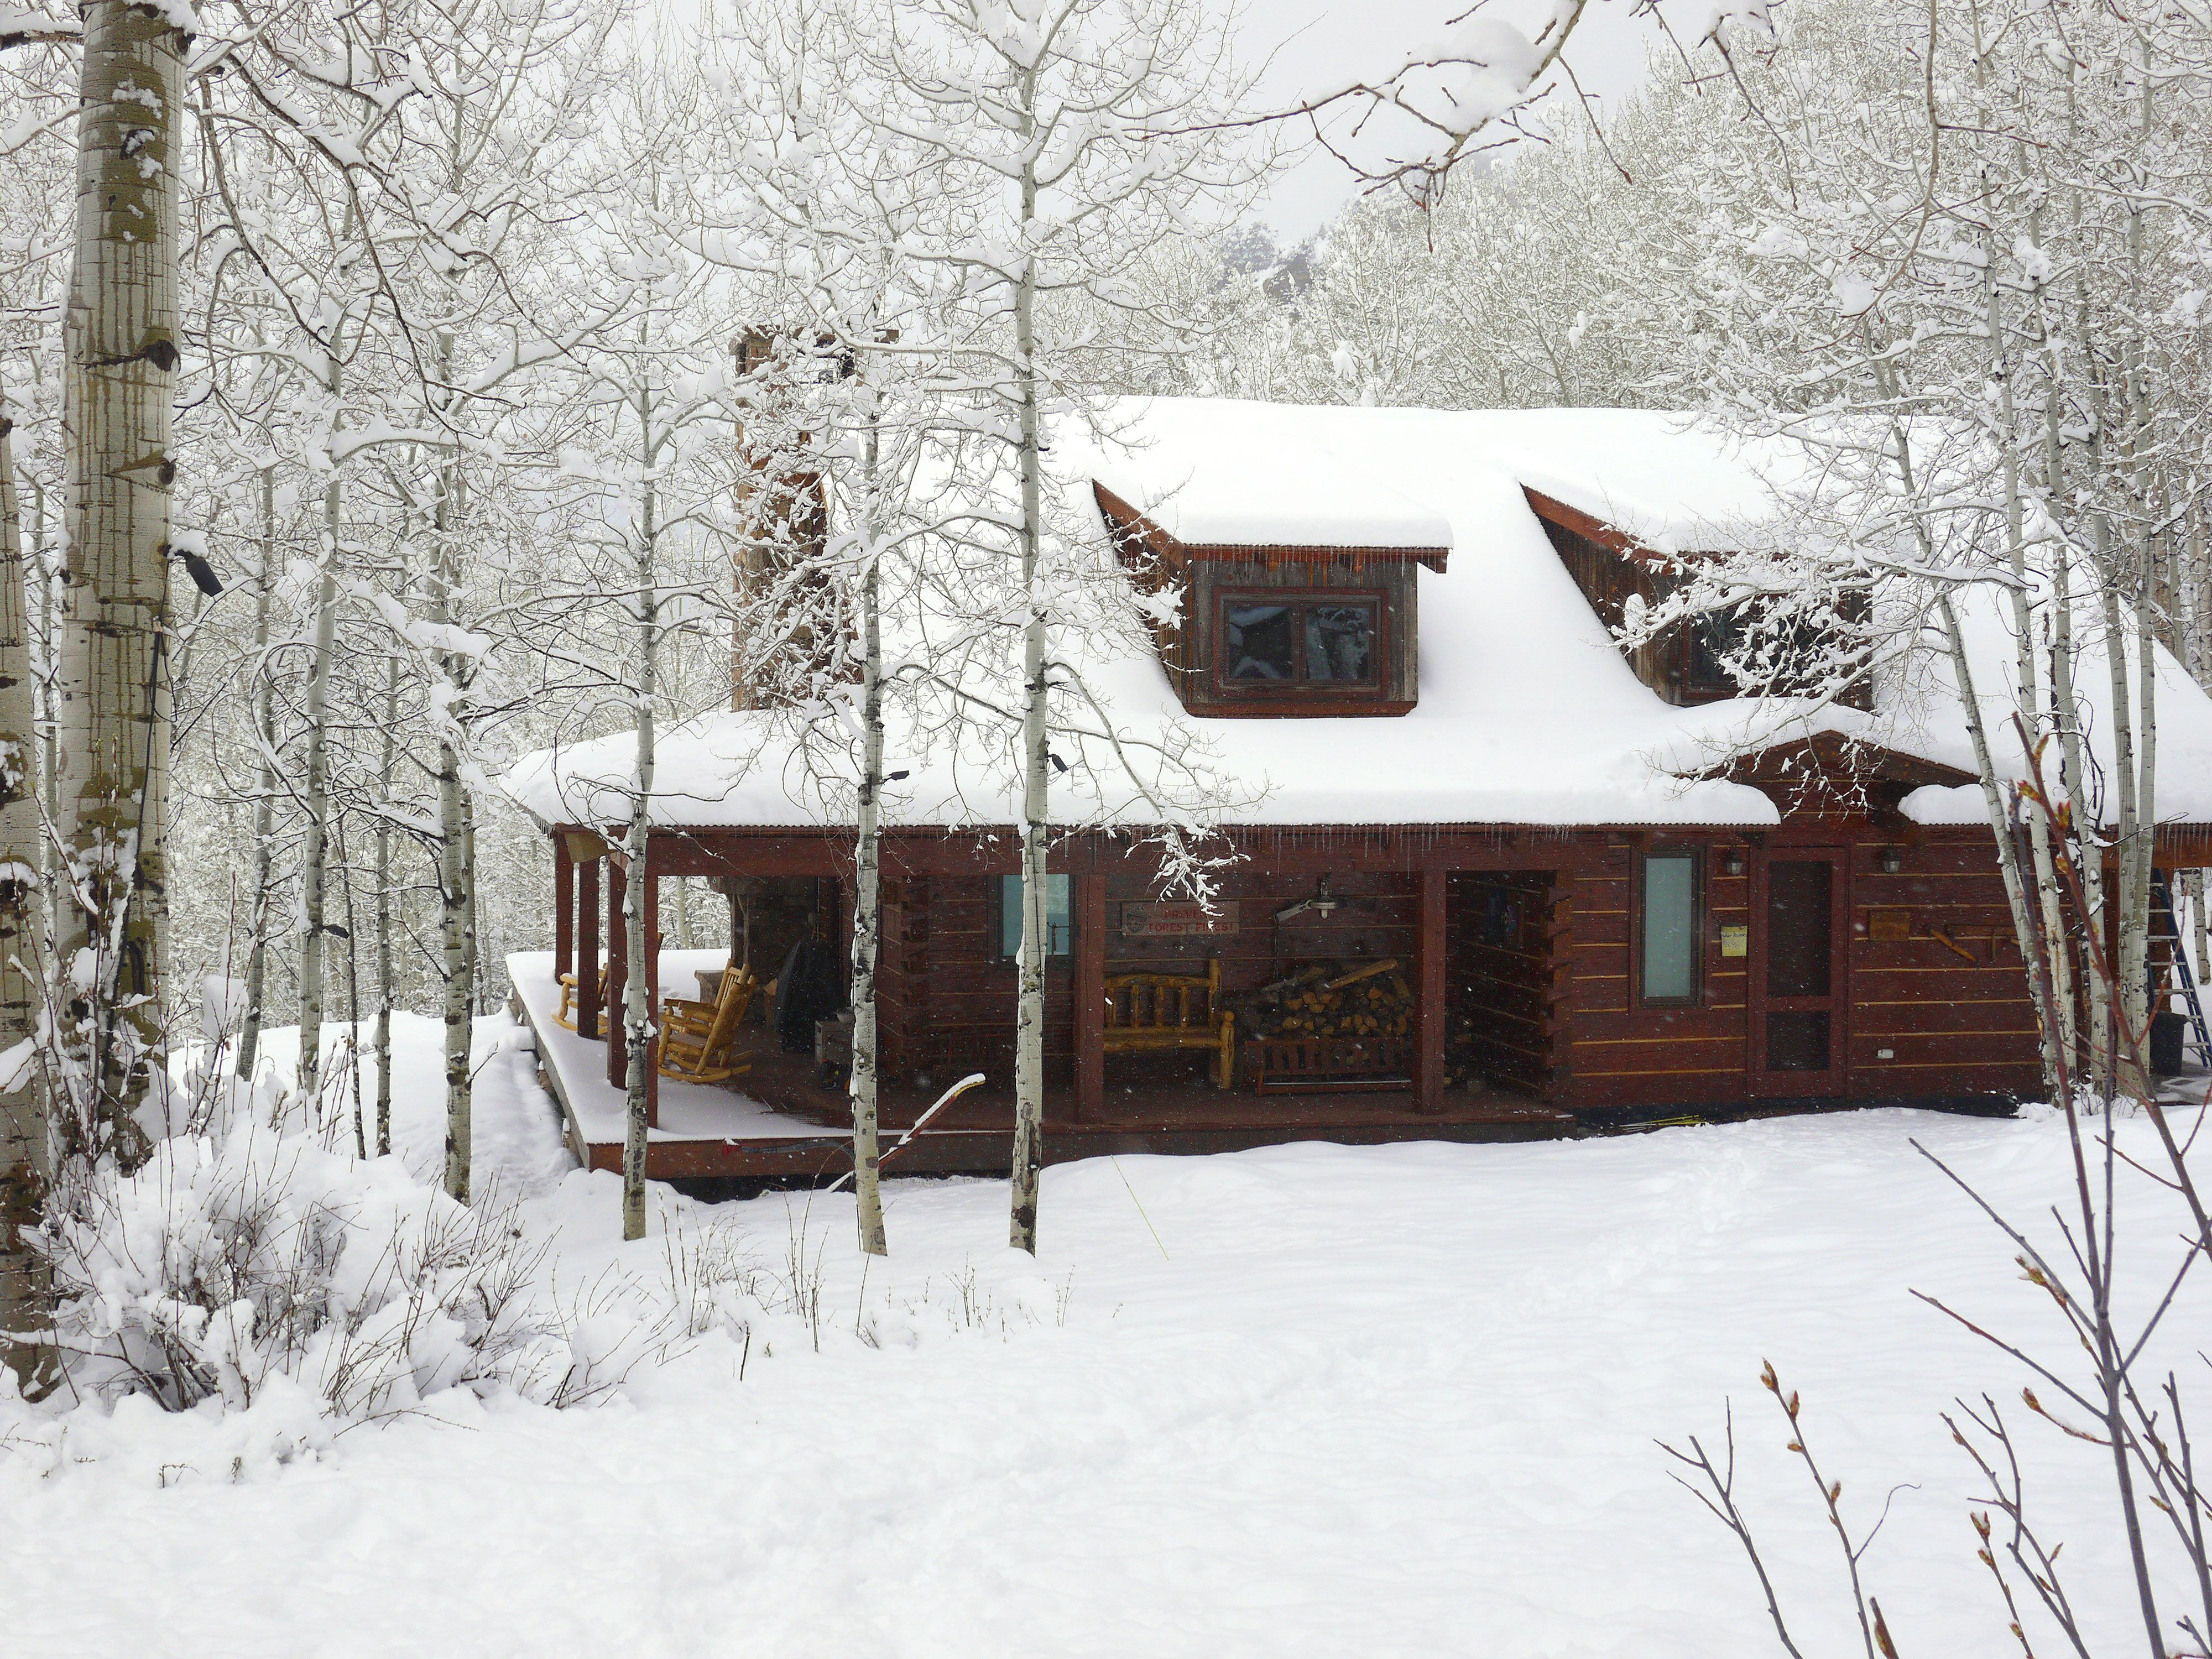 investment winter out the rentals should where on your rental getting cabins vacation cabin list you property word